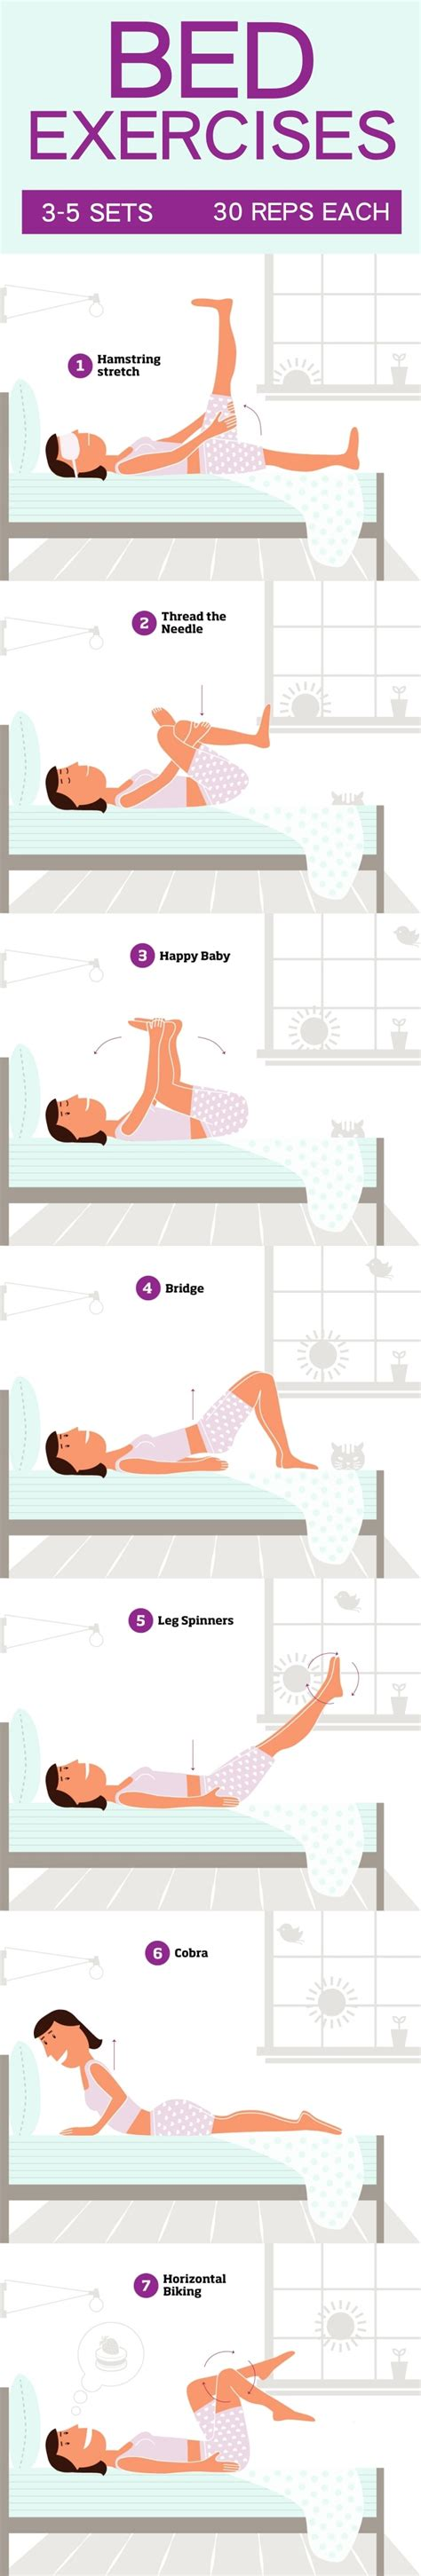 bed exercises how to work out at home tips and exercises